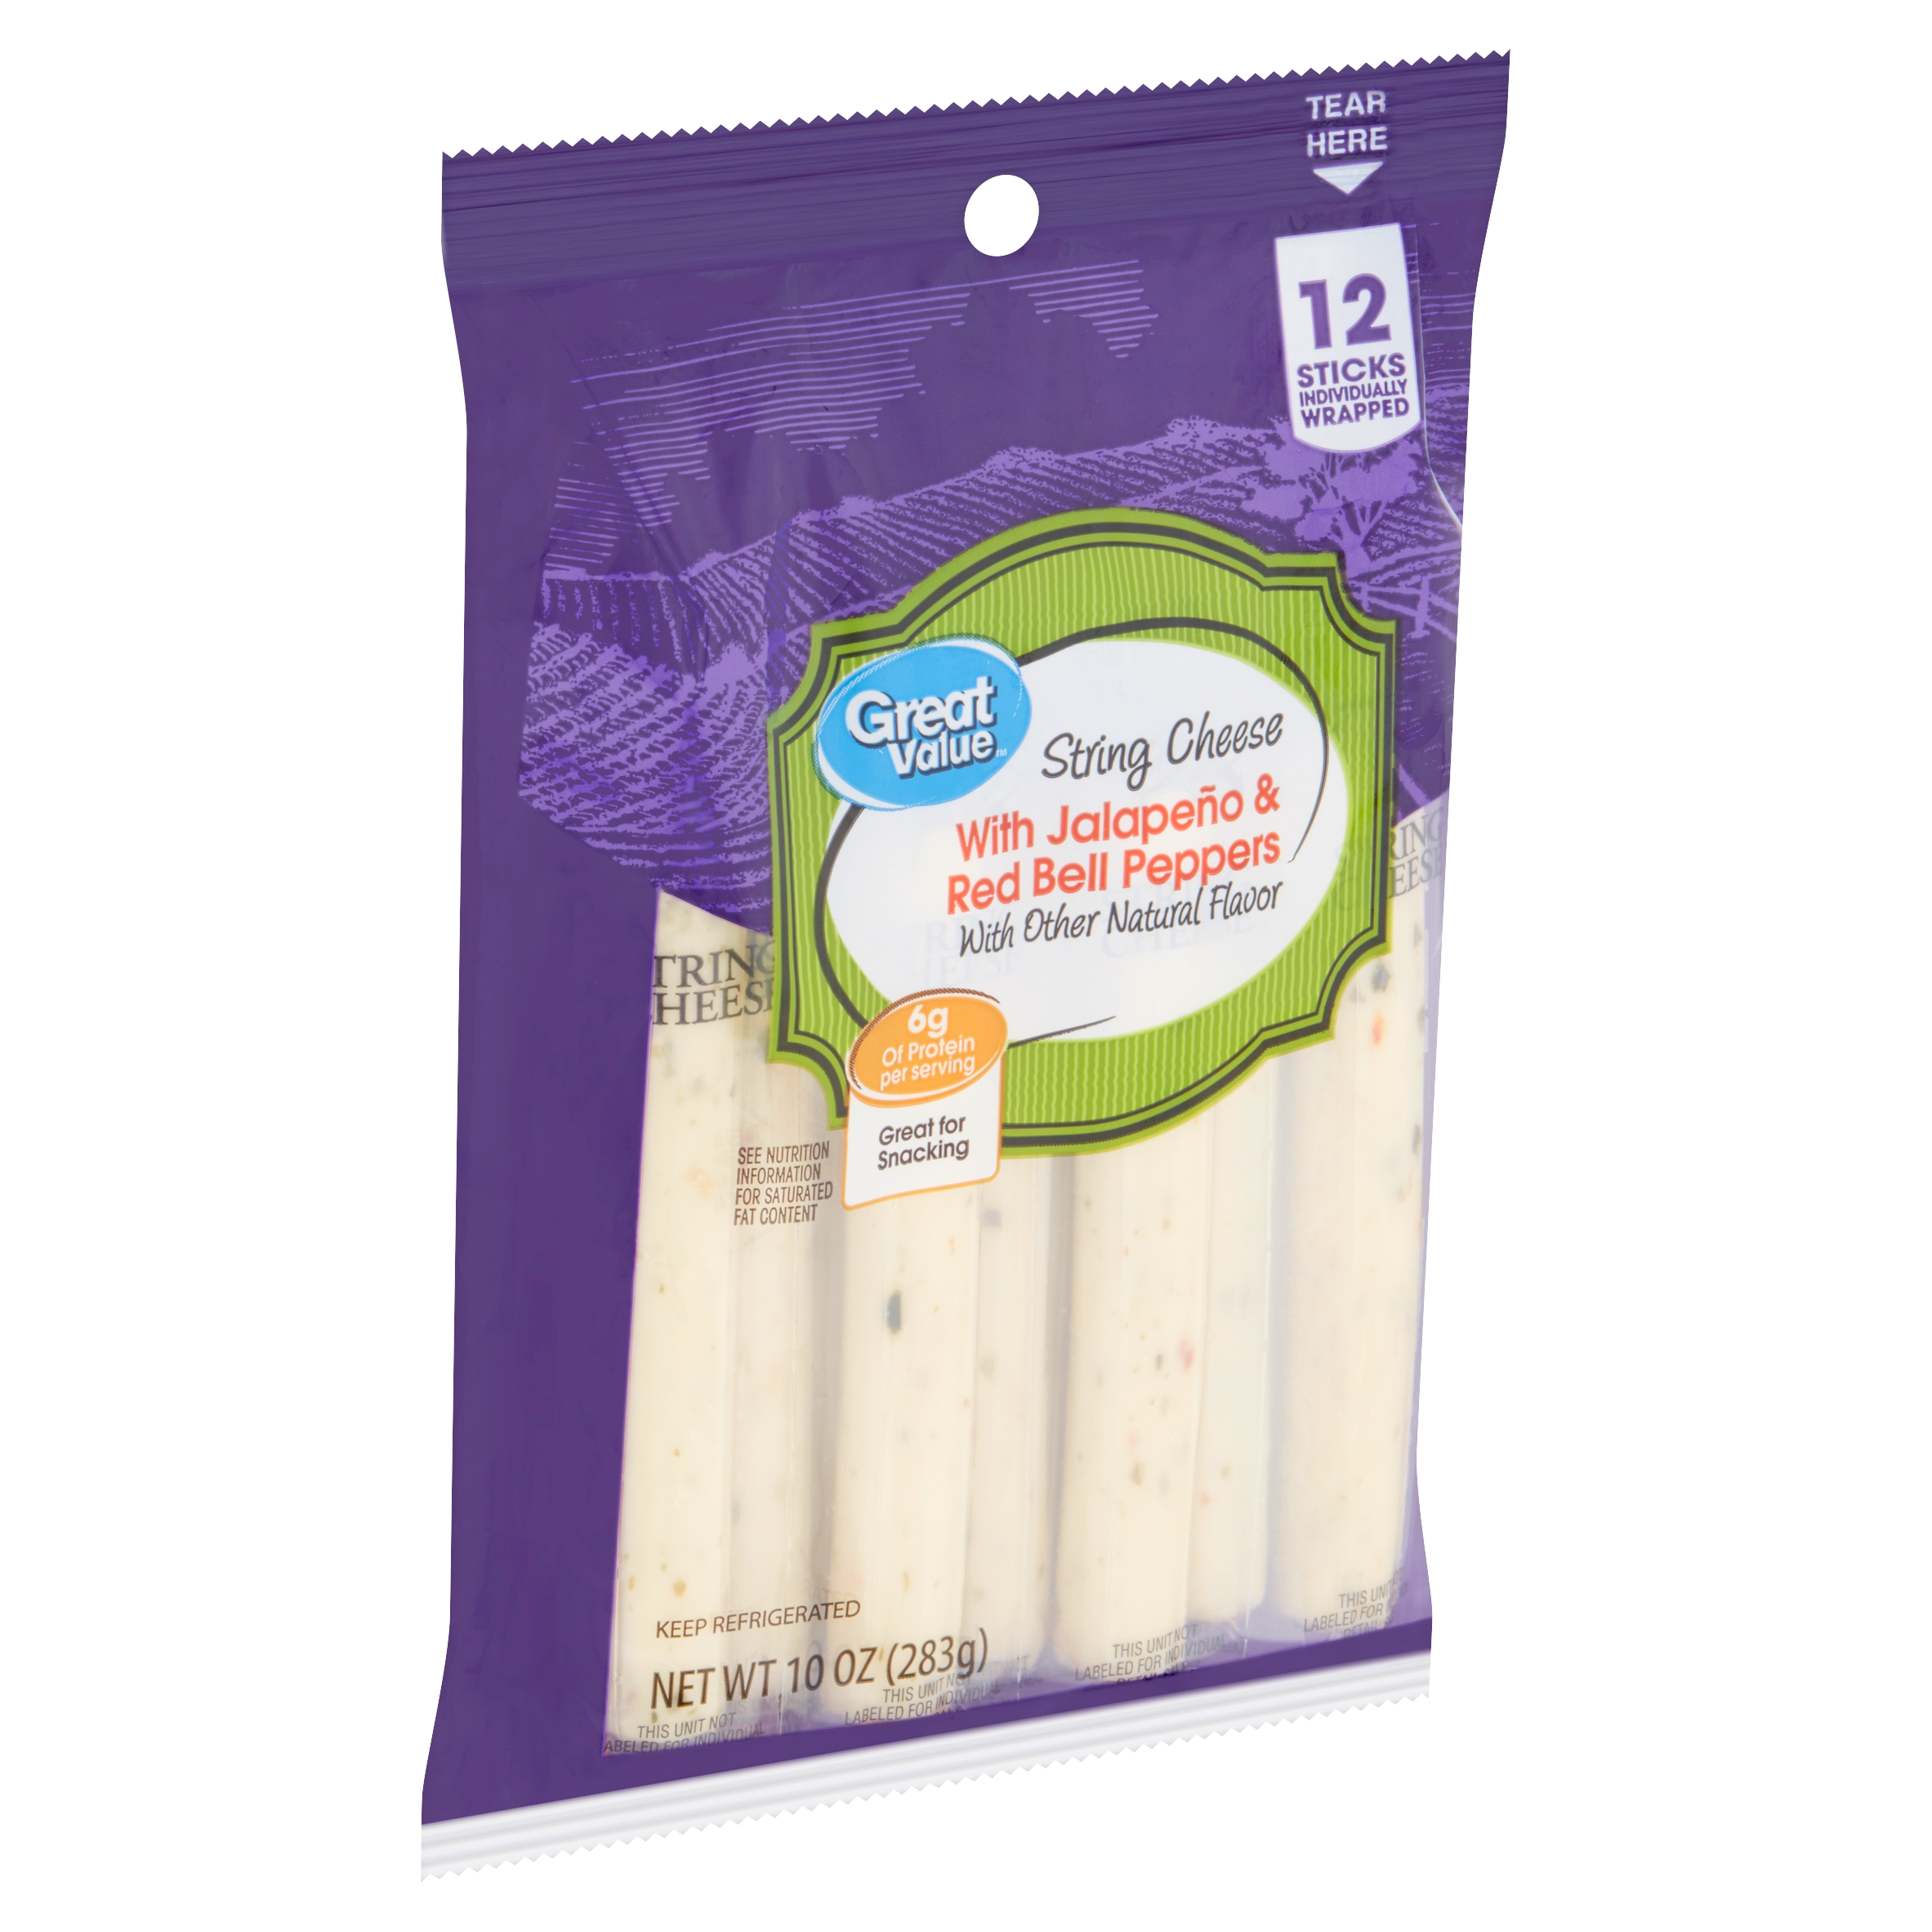 Great Value String Cheese with Jalapeño & Red Bell Peppers, 12 count, 10 oz